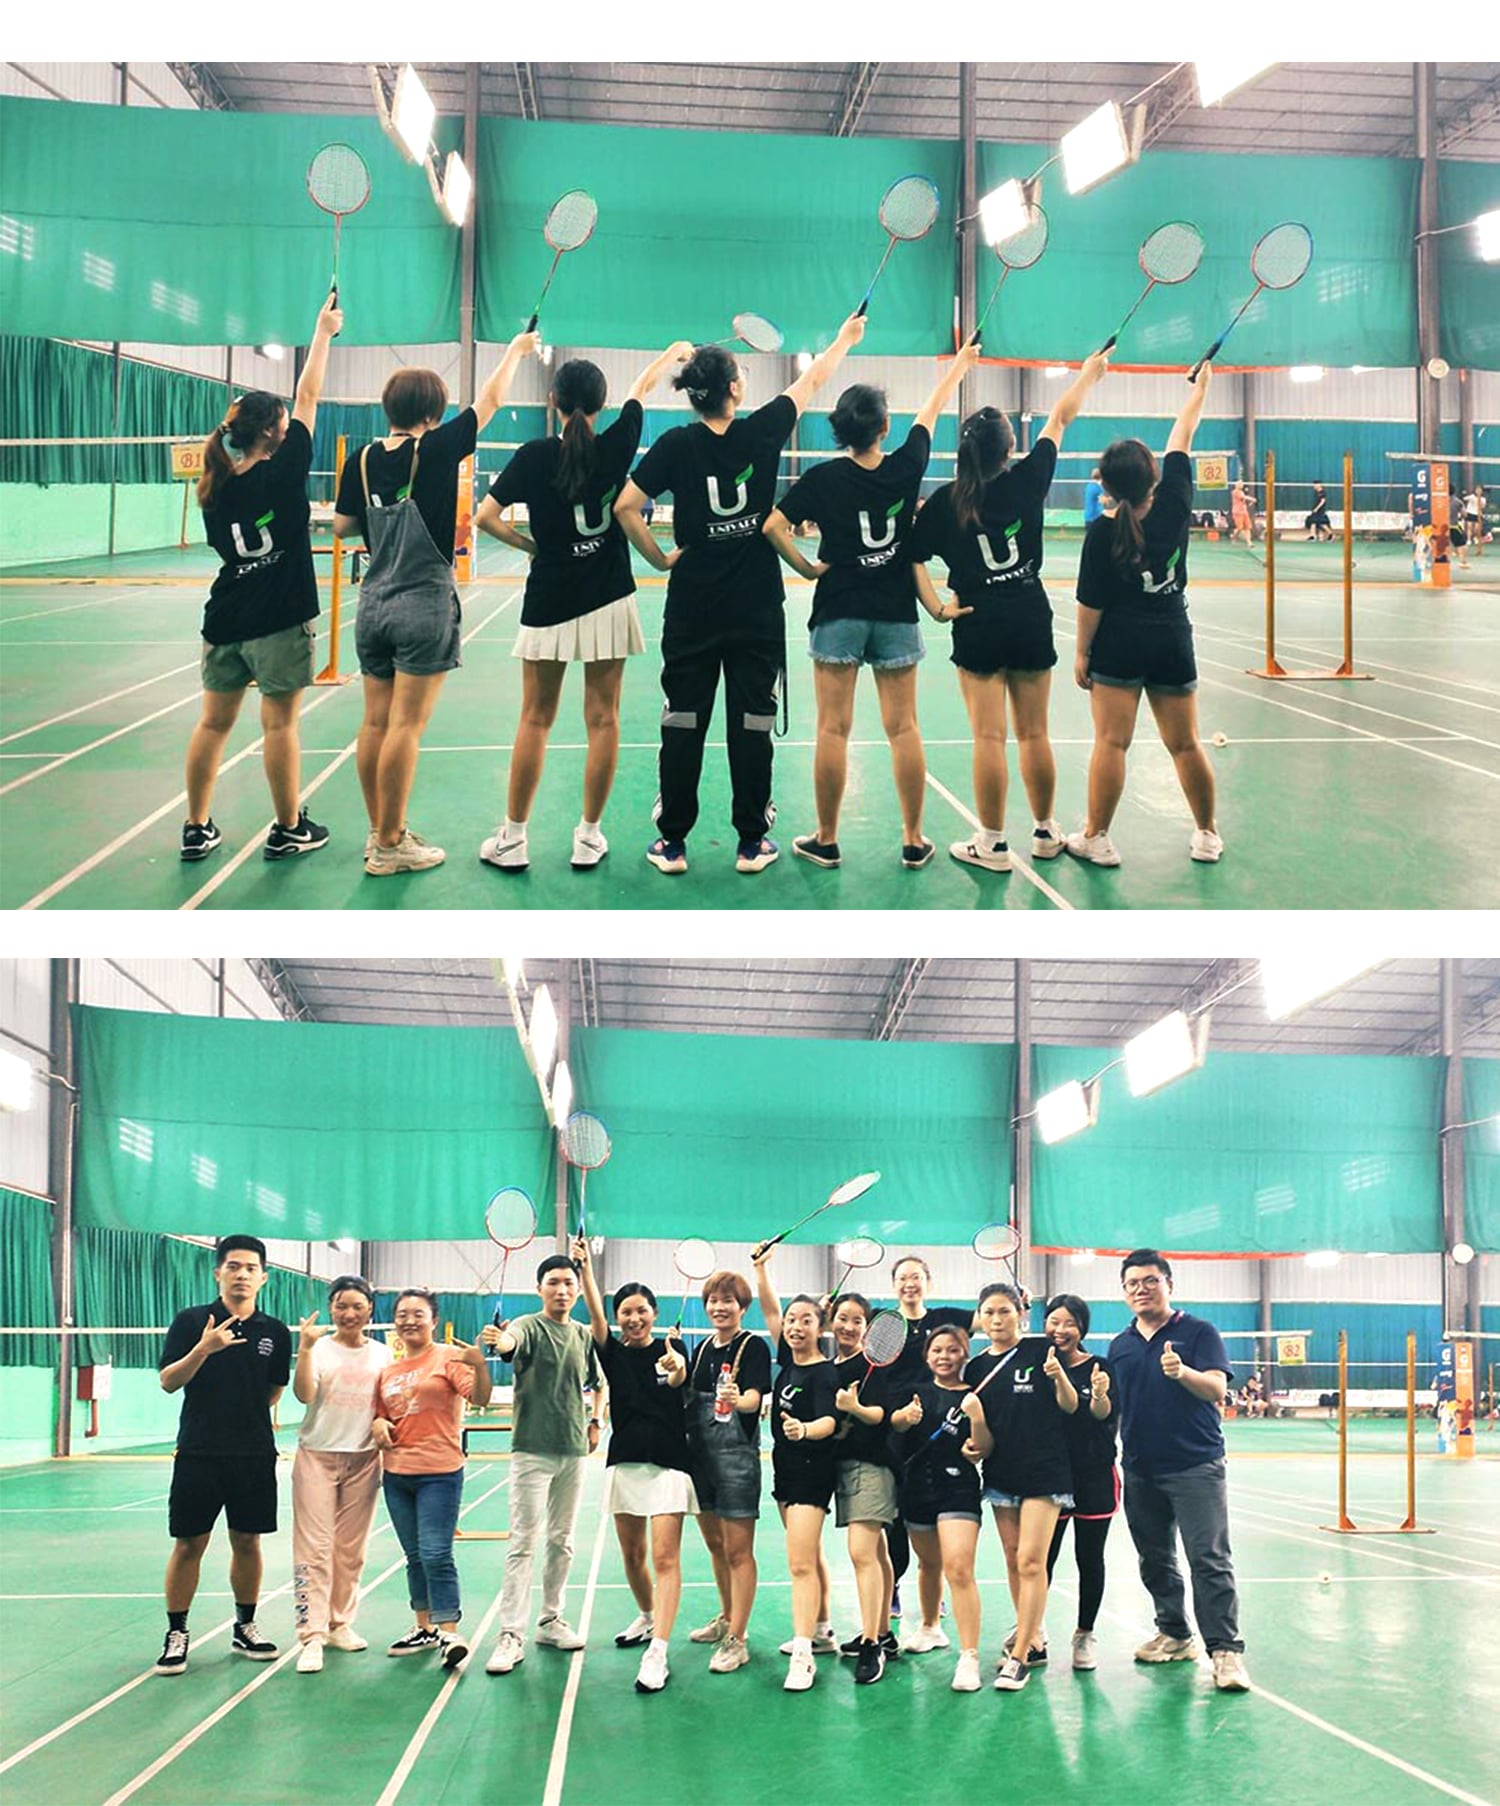 Badminton Tour in Summer 2020 - Cool and Sweaty